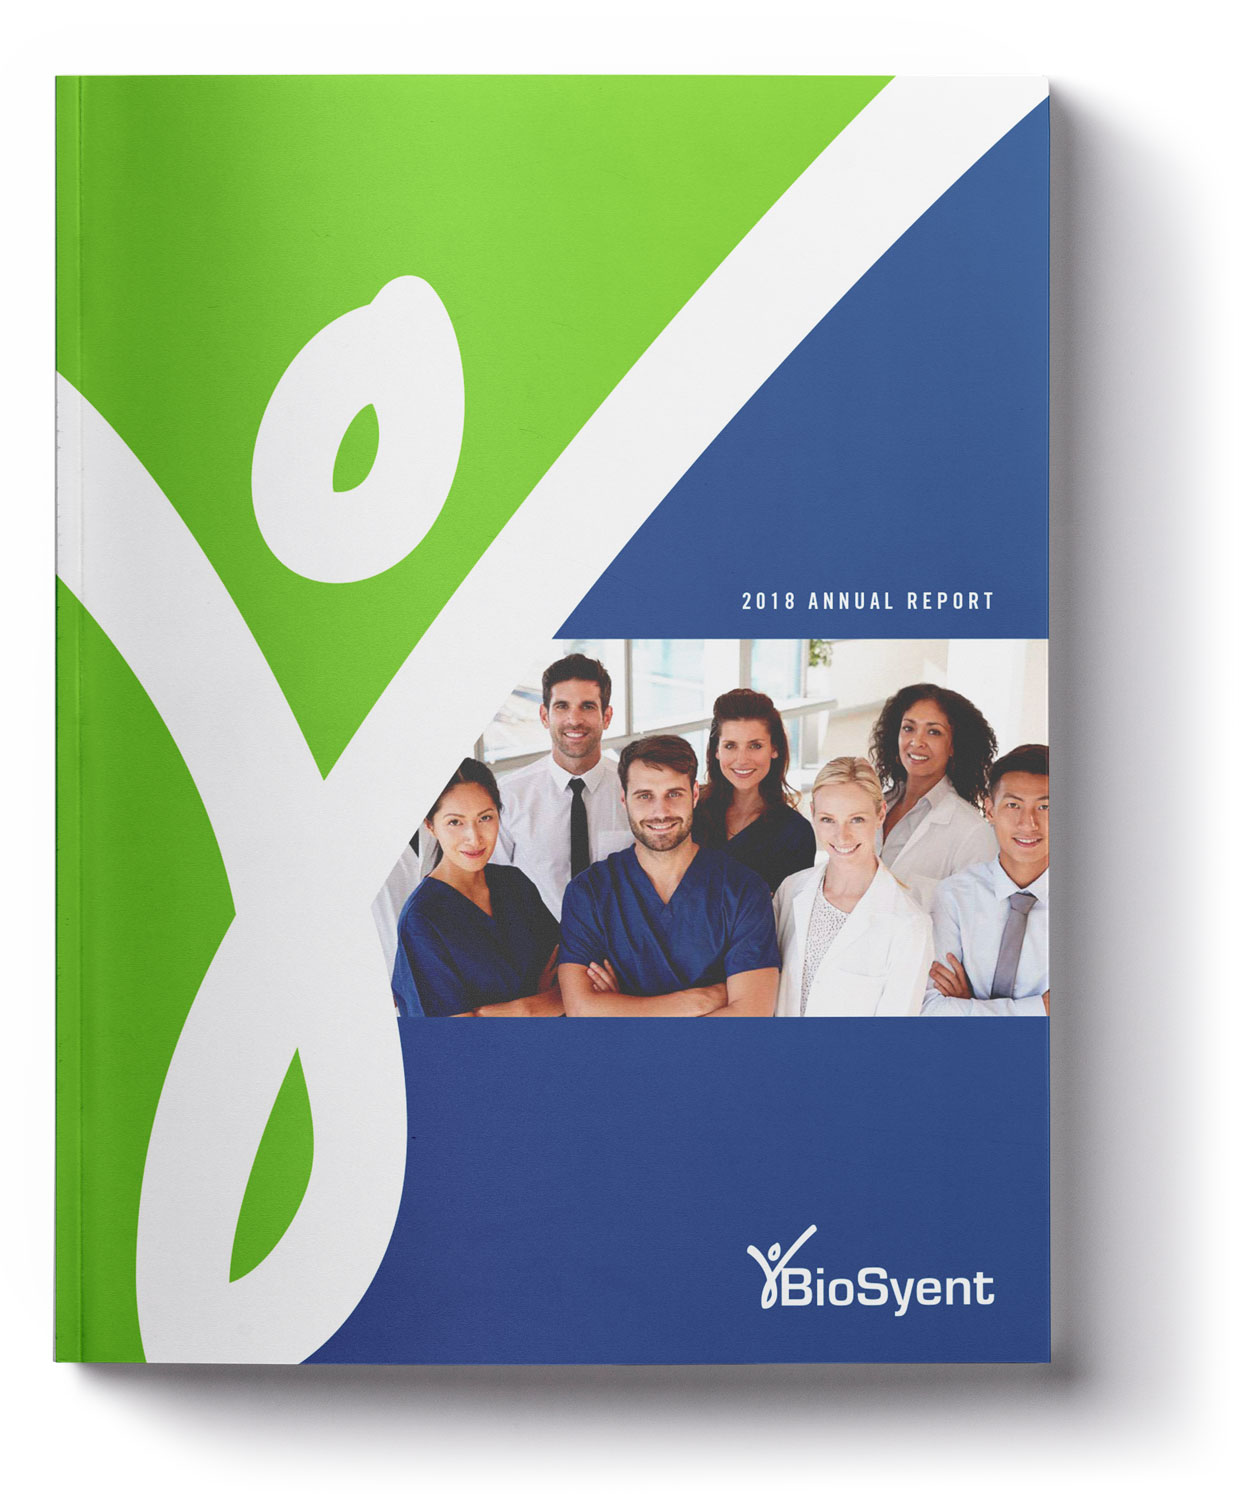 BioSyent Inc 2018 annual report cover